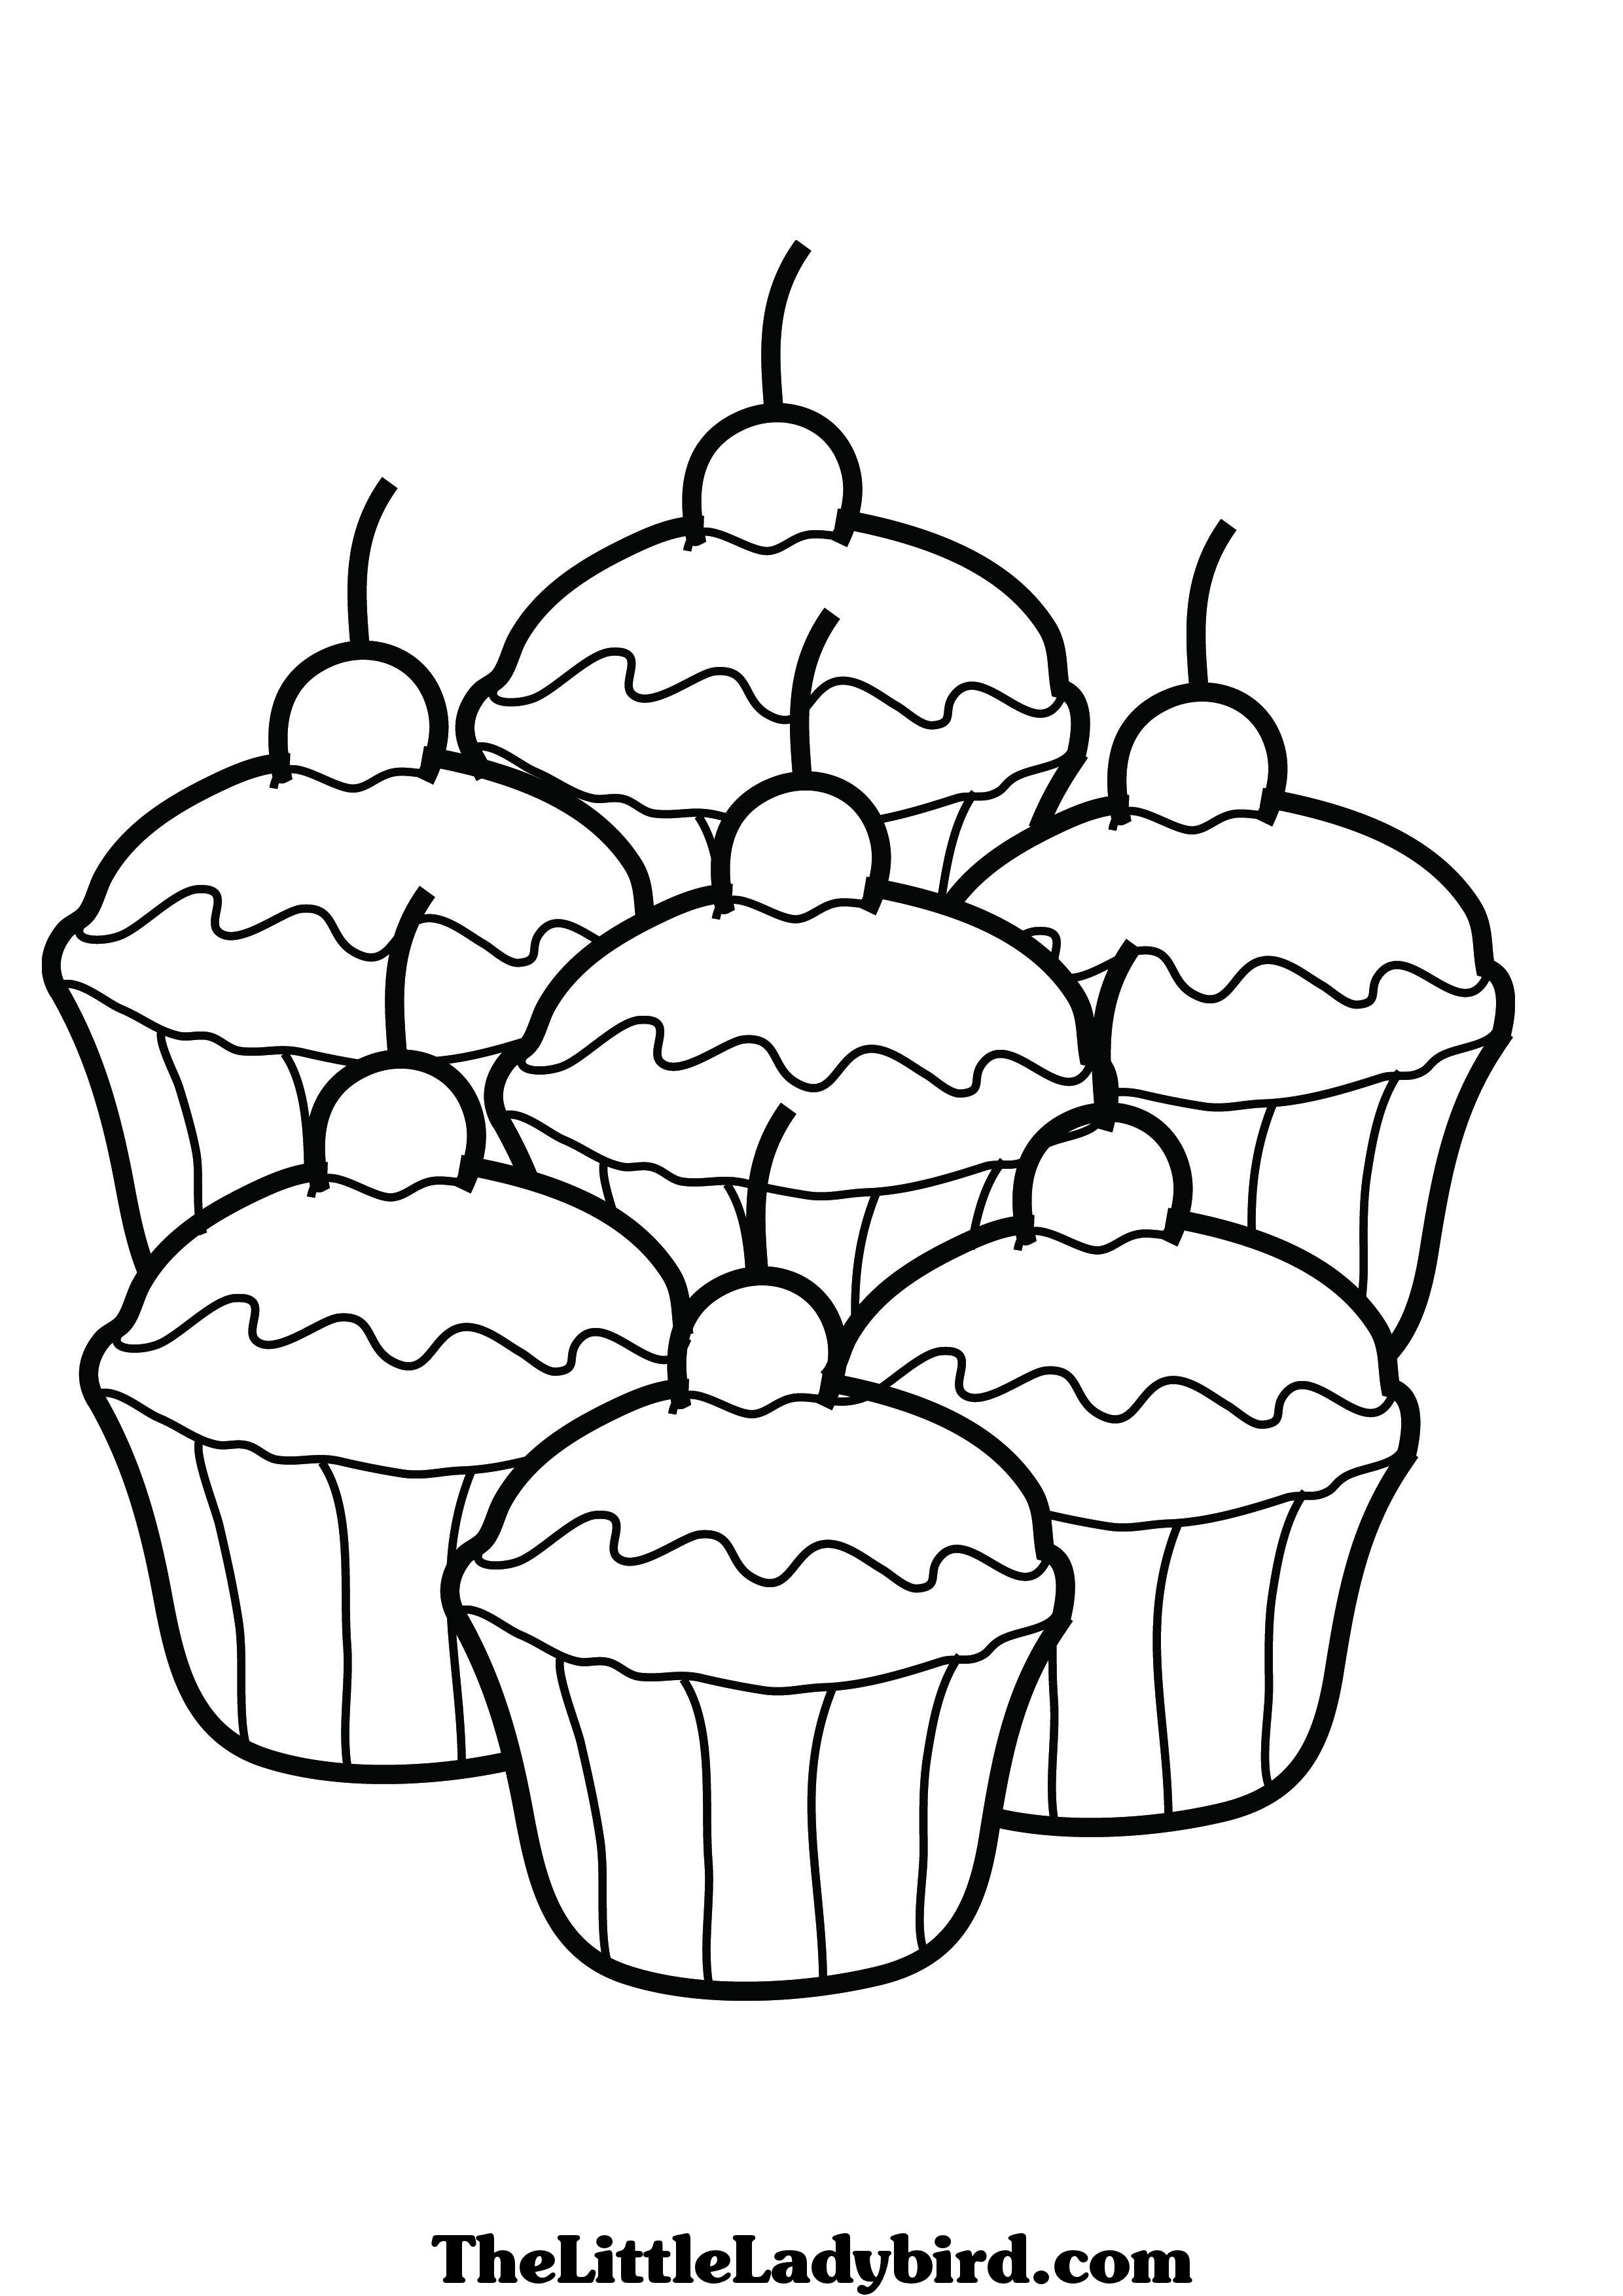 2480x3508 Cupcake Coloring Pages Free Coloring Pages Cup Cake